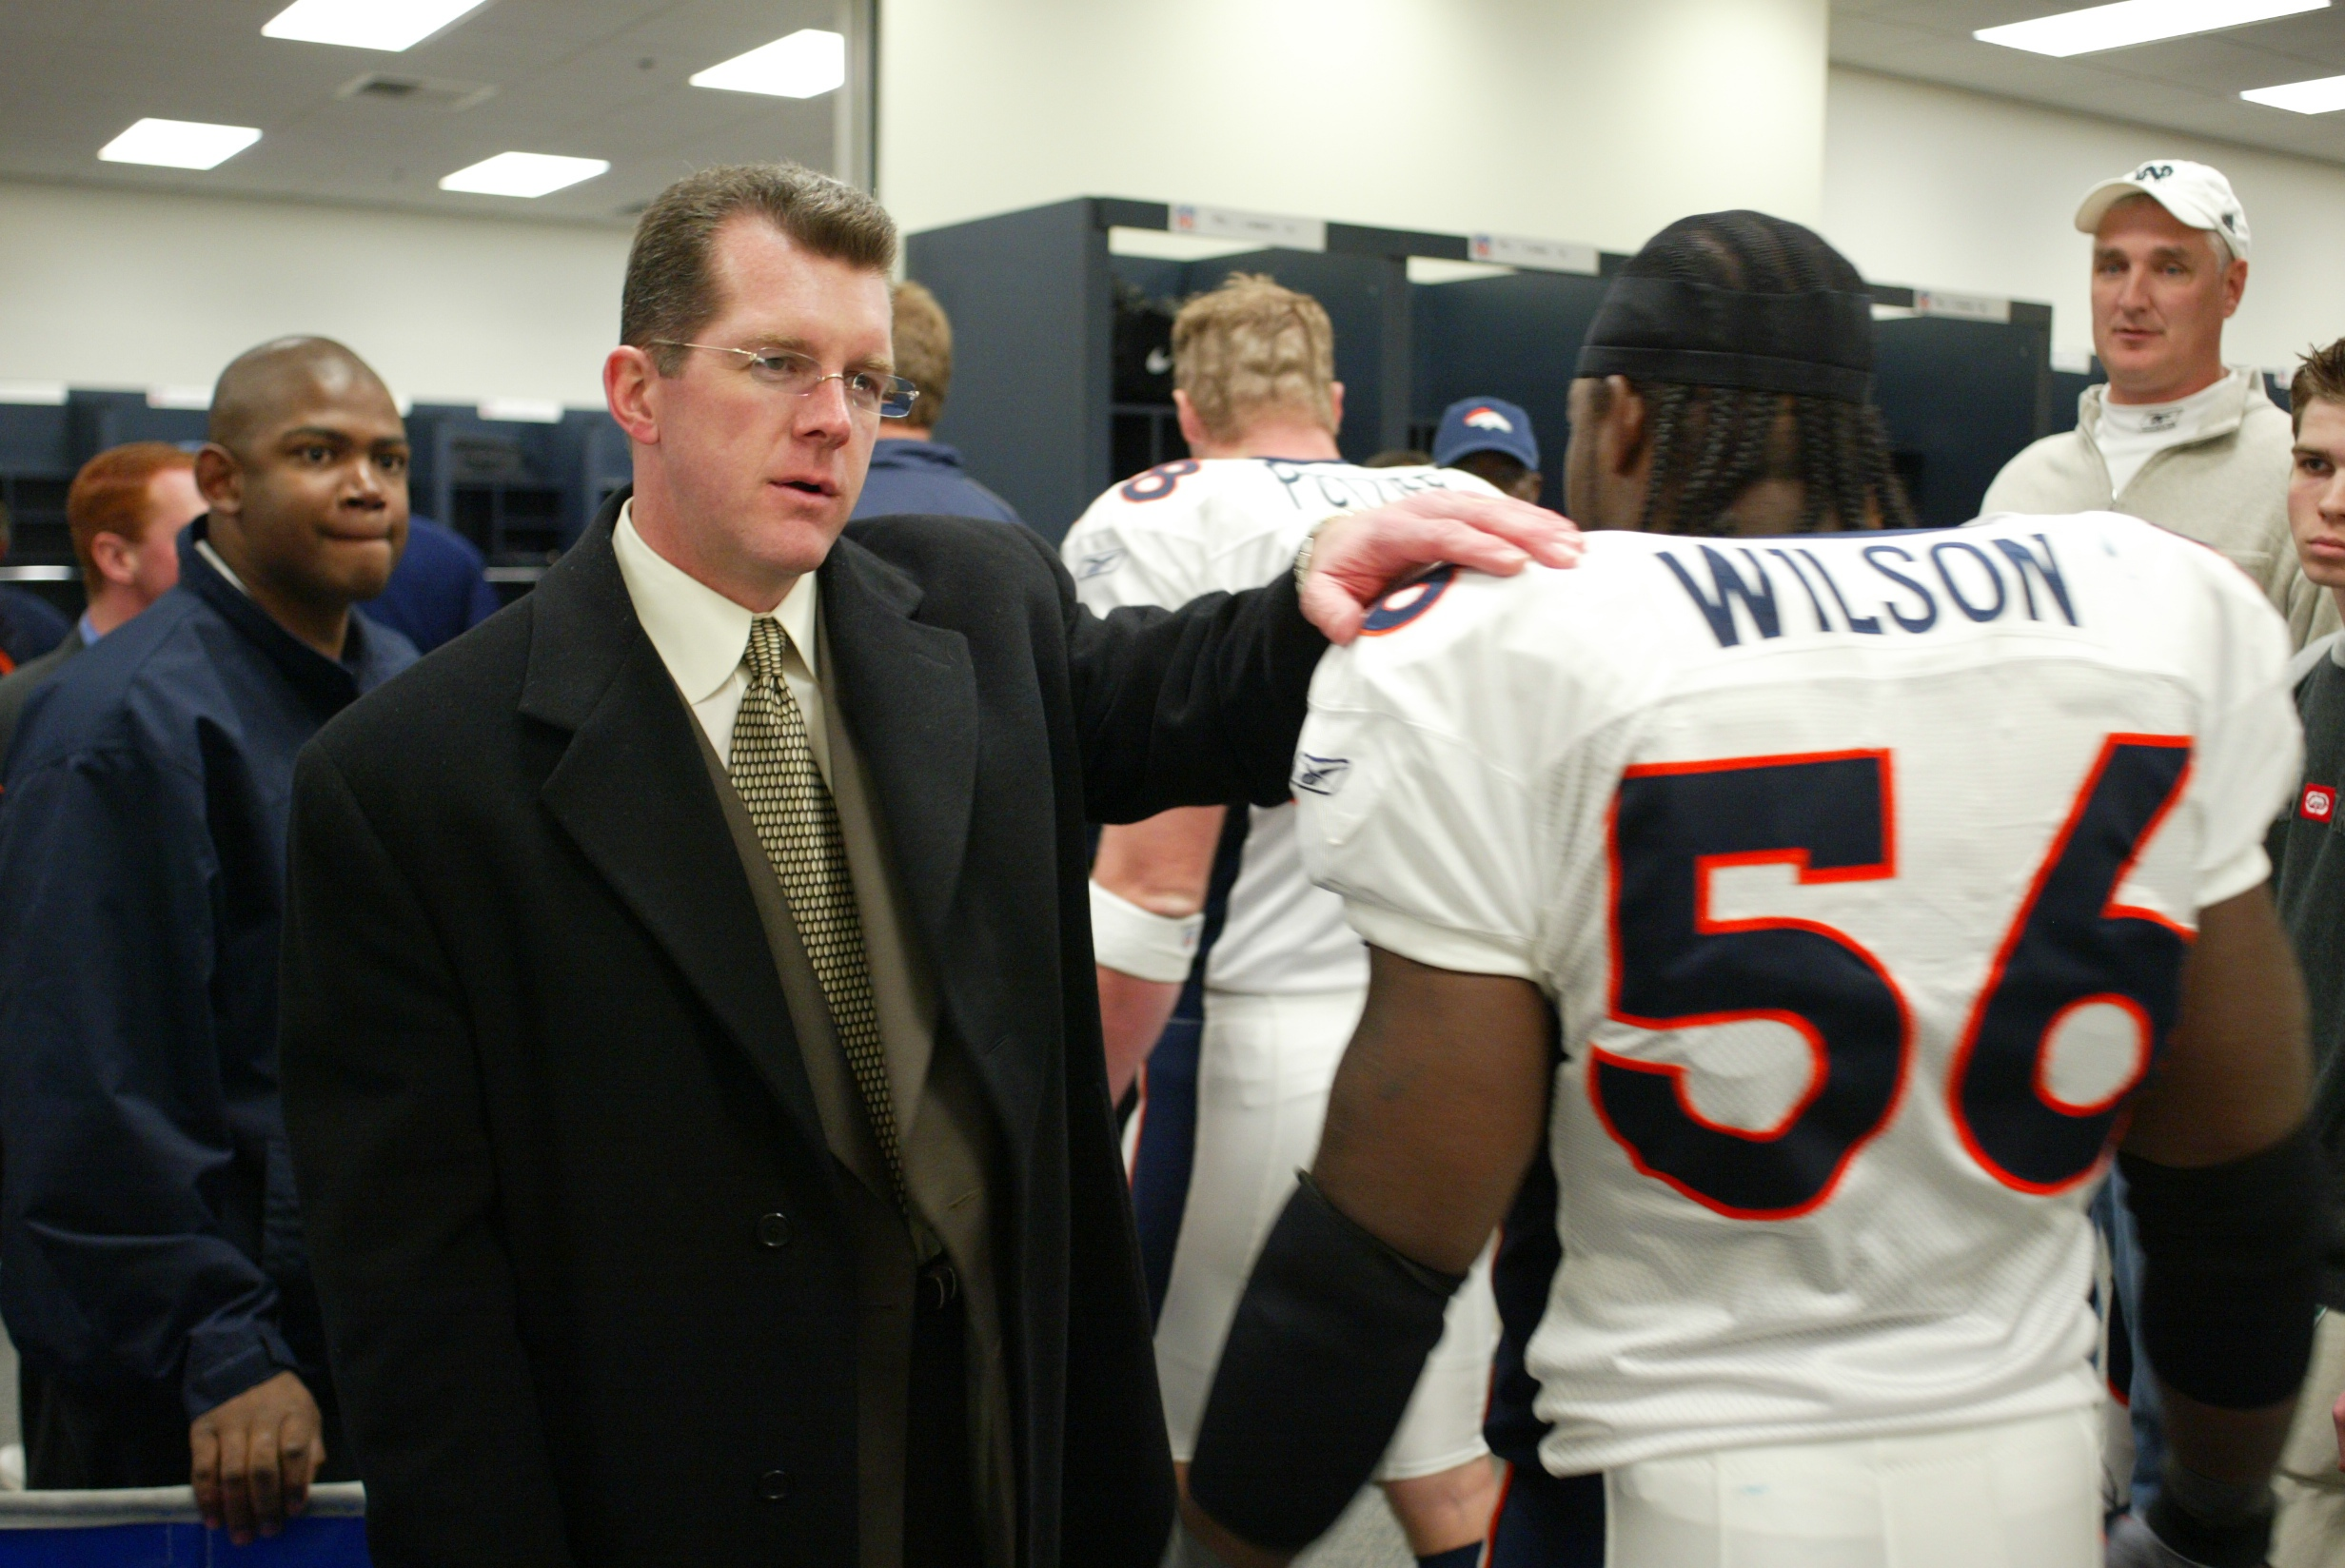 Greeting linebacker and team captain Al Wilson after a hard fought win on the road.